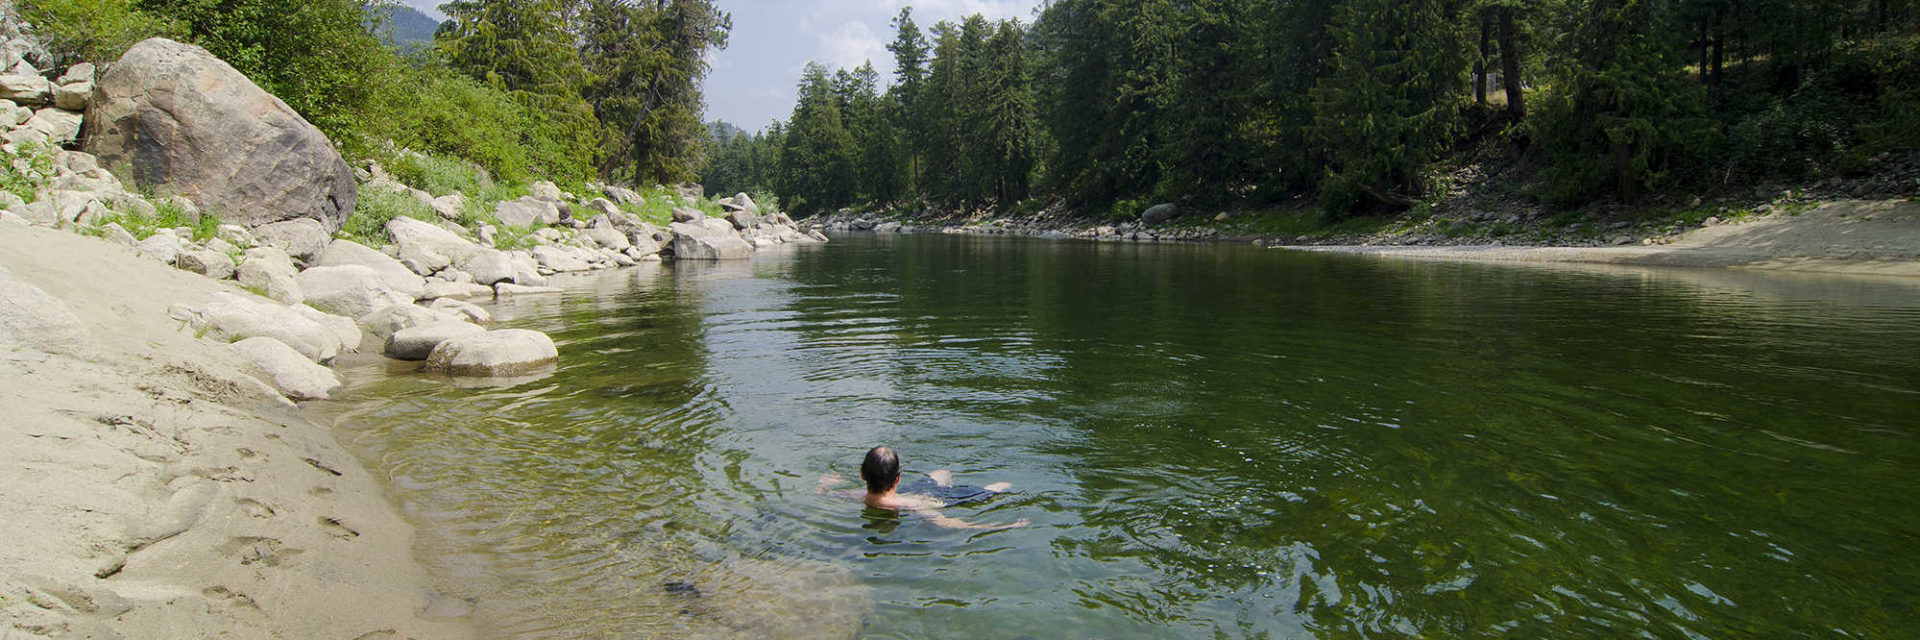 Our Story - swimming in the Similkameen